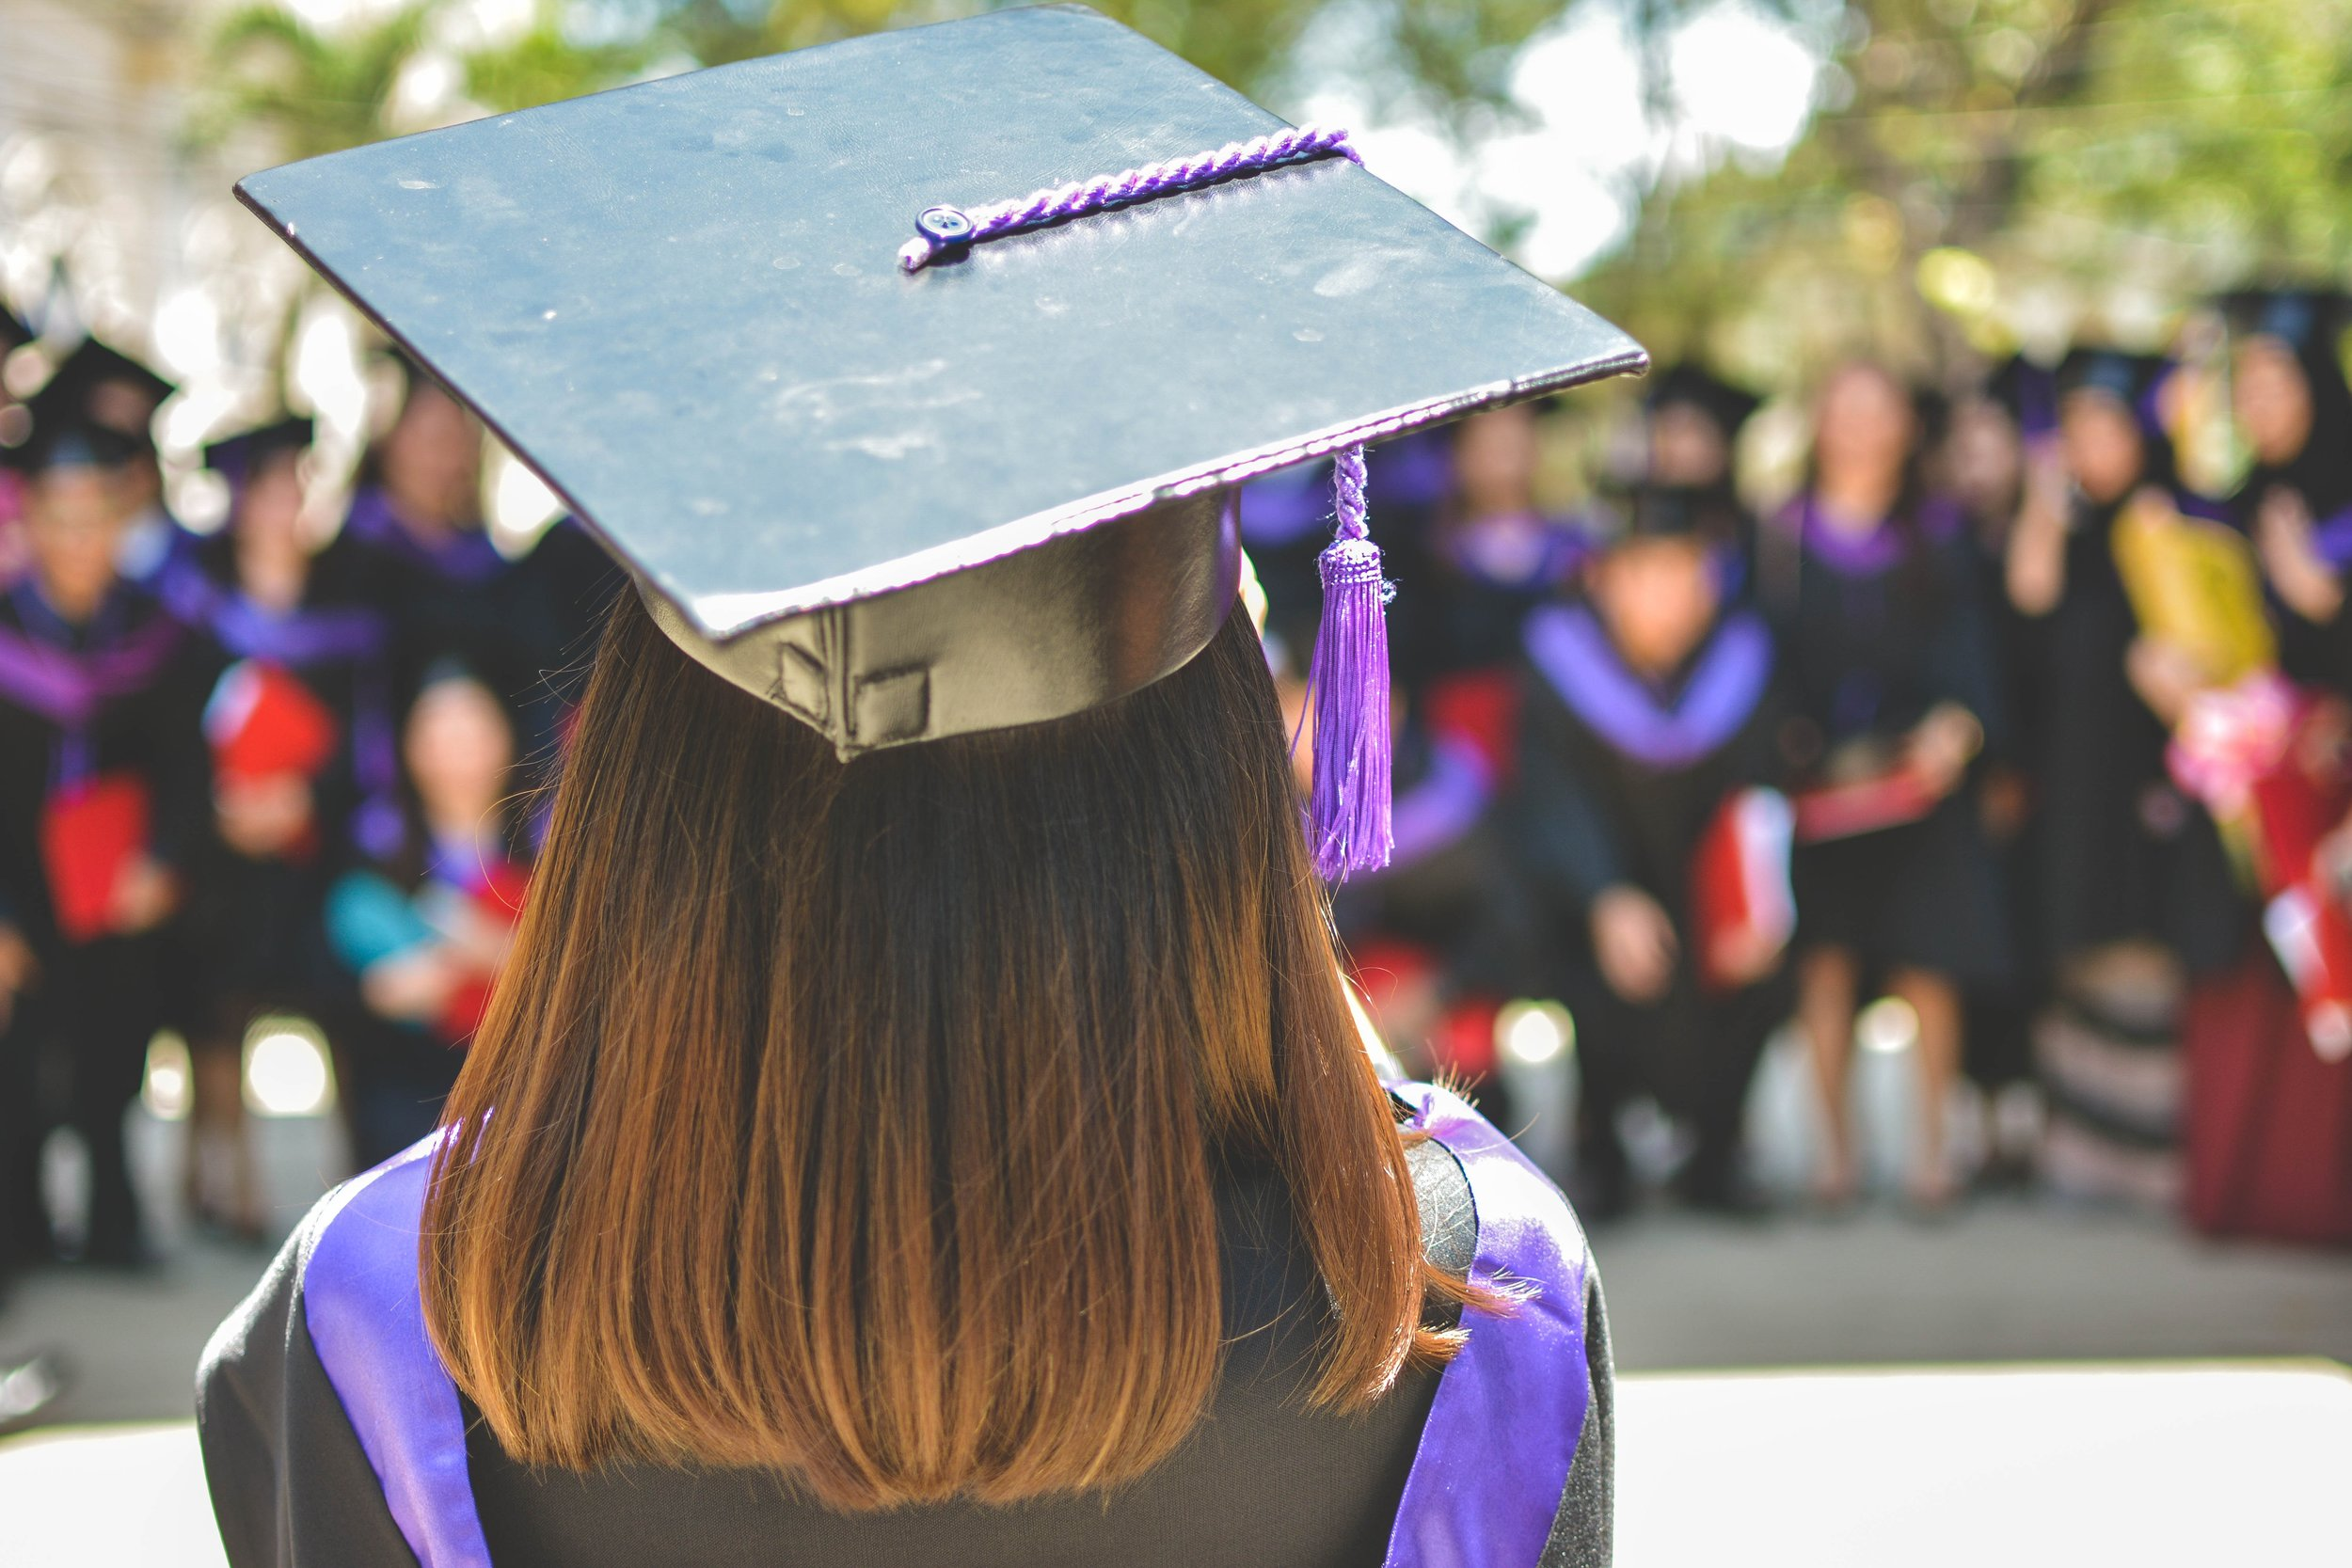 How the #MeToo Movement Has Made the Podium Hers - This year is seeing a record number of women commencement speakers. Although the #MeToo movement is not the direct cause of the increased number of women speaking at prestigious graduation ceremonies, it has certainly influenced the decisions. This year women account for about 60% of the speakers at 25 of the schools with the largest endowments. Speakers include women from a range of fields such as business, art, politics, athletics, and more.